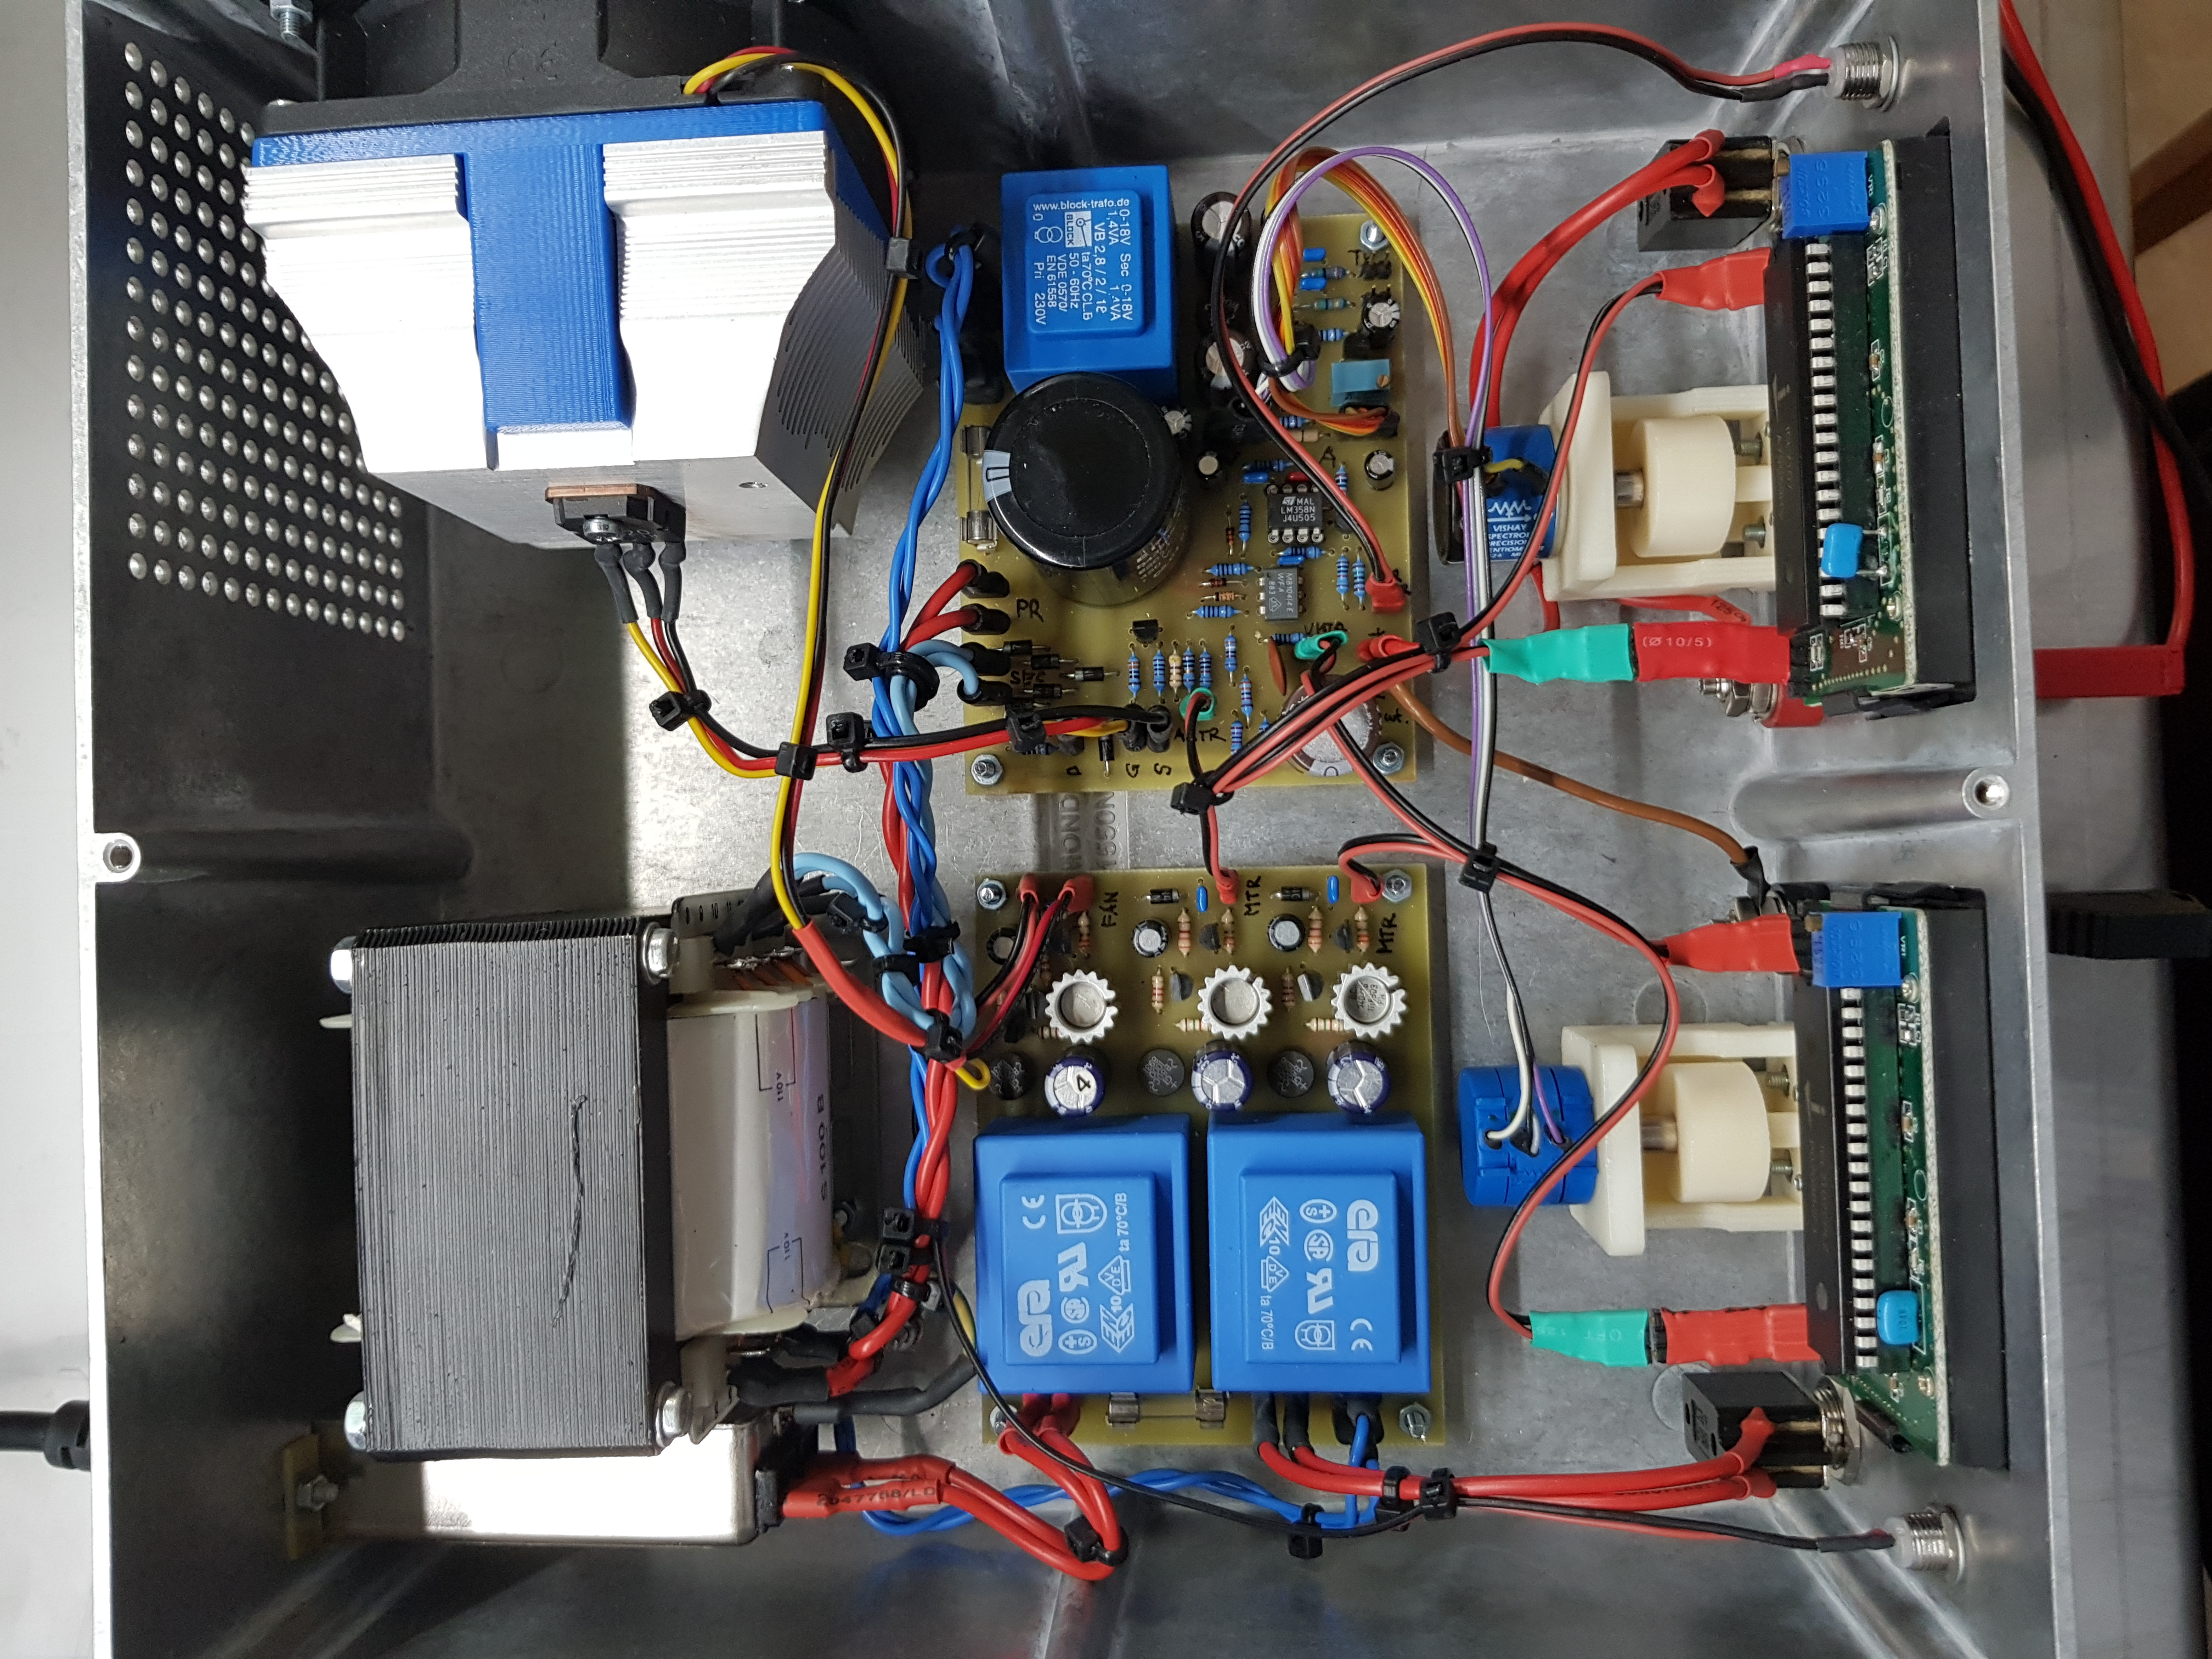 A 250v 150ma Variable Linear Power Supply Electronic Projects For Fun Transistor Regulator Circuit Can Adjustable Output Voltage At The Top Left We Have Cpu Cooler With An Insulated Fan Pass Then Board Its Own 15v Regulated